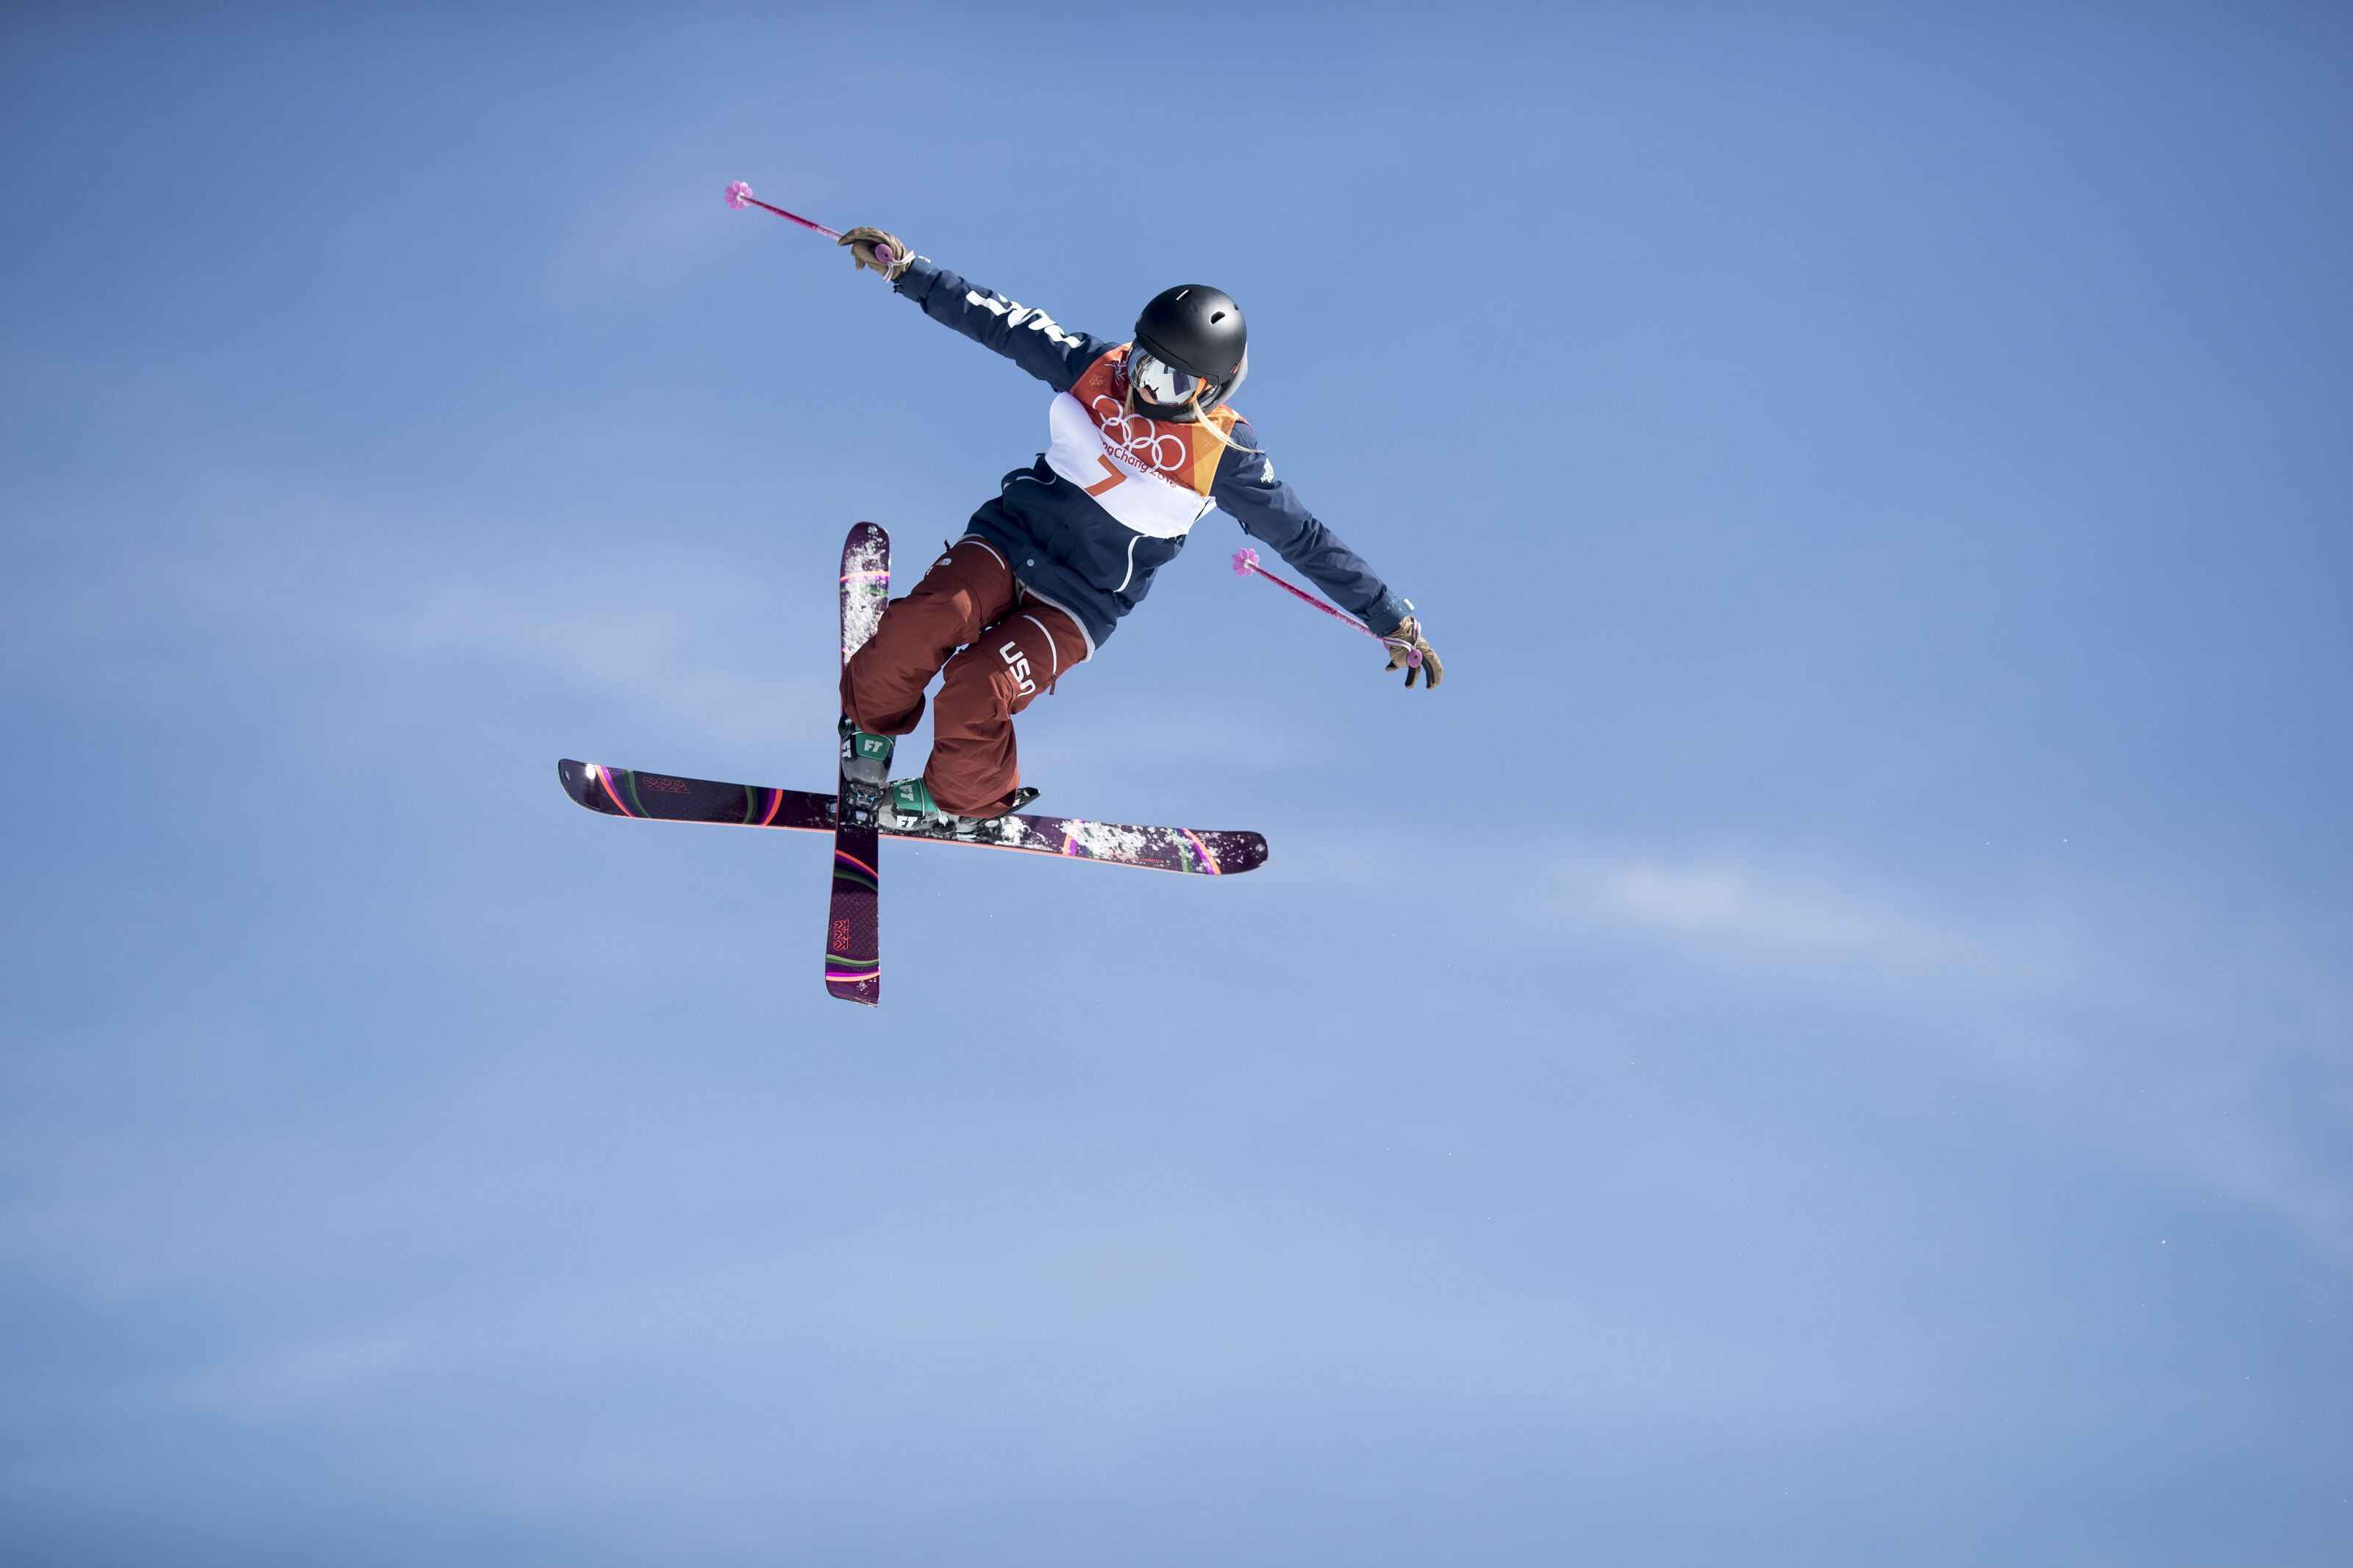 PYEONGCHANG, SOUTH KOREA -FEBRUARY 17: Maggie Voisin #7 of the United States in action during the Freestyle Skiing Ladies' Ski Slopestyle Final at Phoenix Snow Park on February17, 2018 in PyeongChang, South Korea. (Photo by Tim Clayton/Corbis via Getty Images)